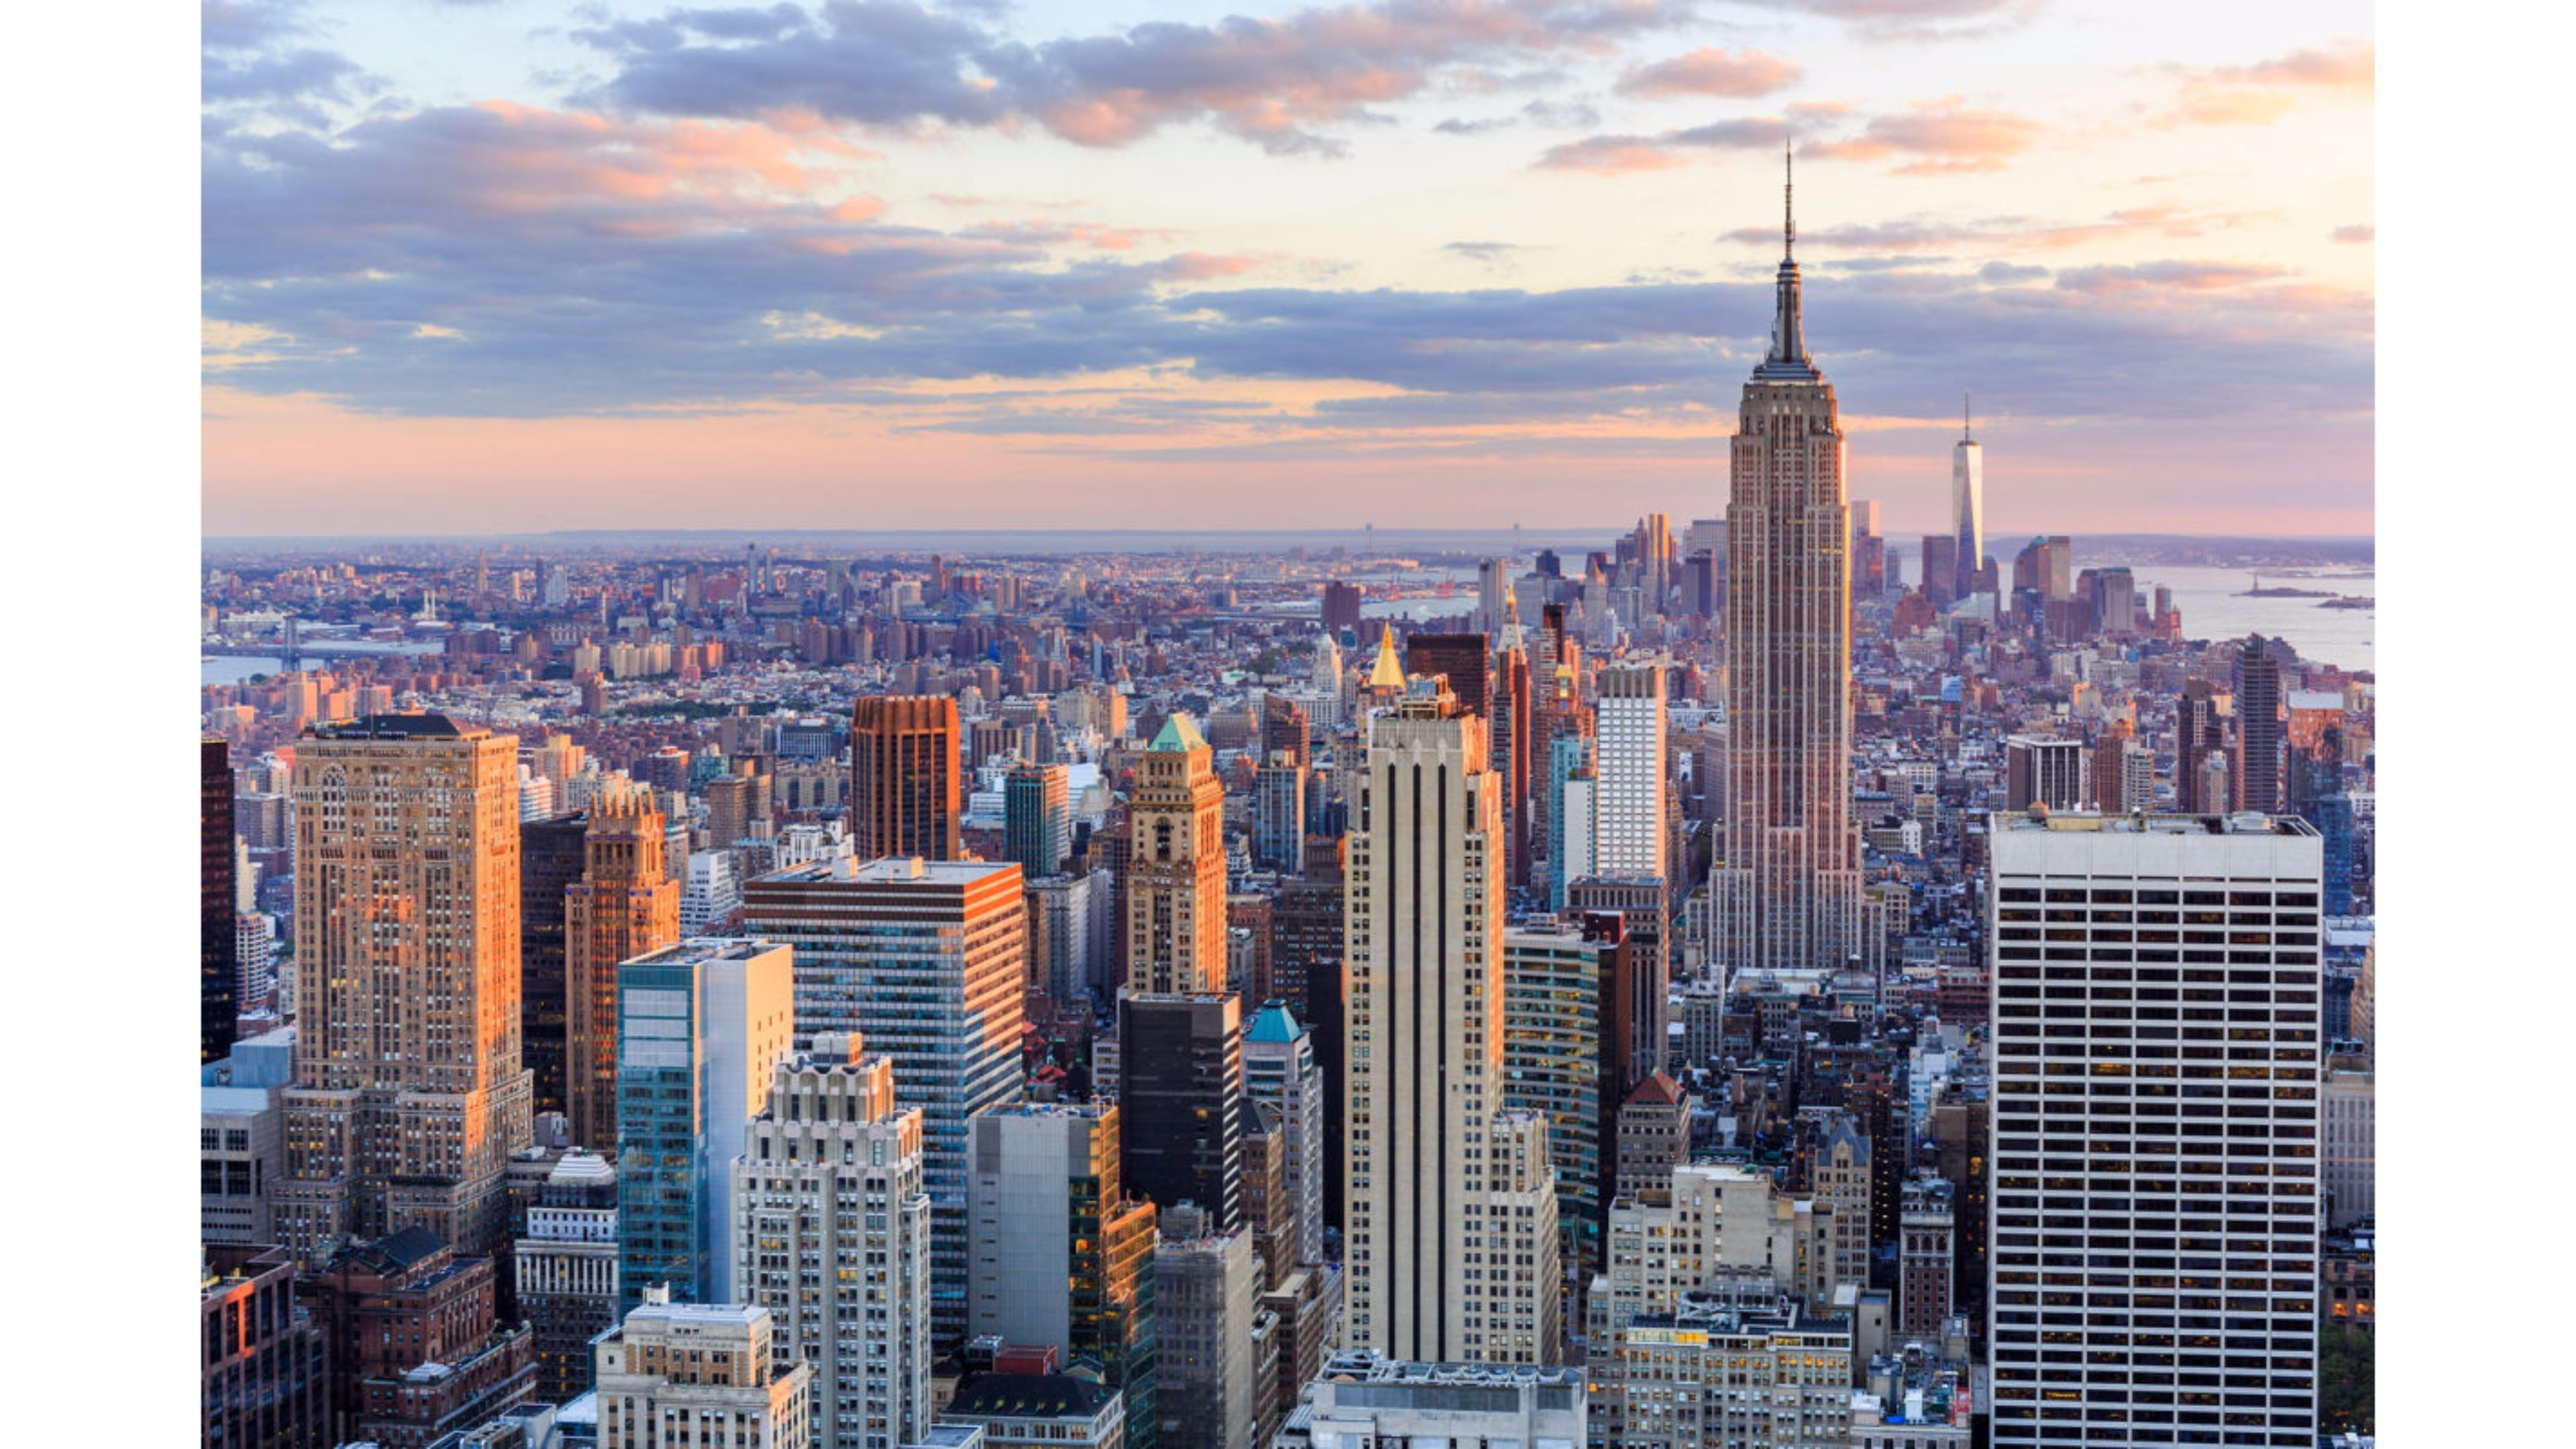 3840x2160 Popular New York City 4k Wallpaper New York City New York City